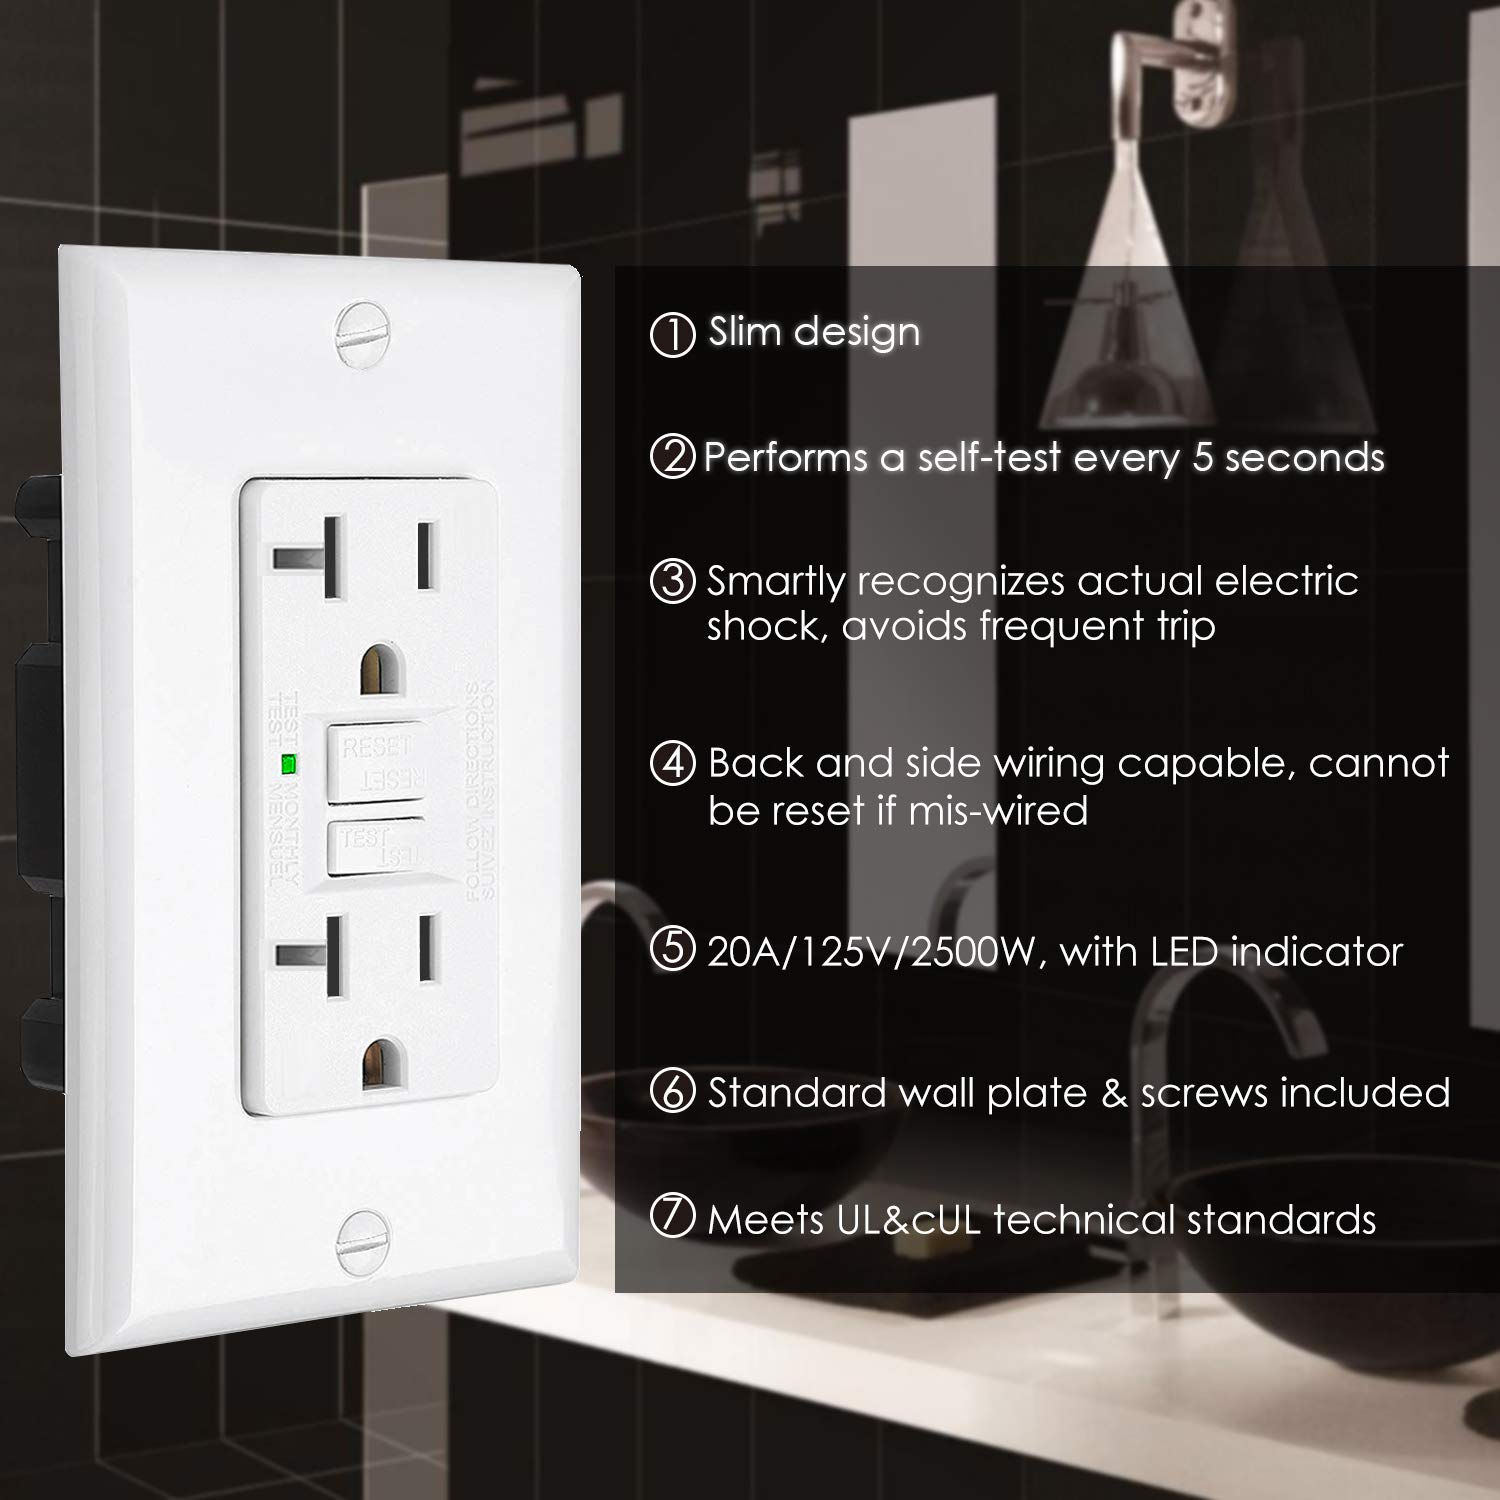 [10 Pack] BESTTEN 20-Amp GFCI Outlets, Slim GFI Receptacles with LED Indicator, Self-Test Ground Fault Circuit Interrupters, Decor Wall Plates Included, UL Listed, White by BESTTEN (Image #2)